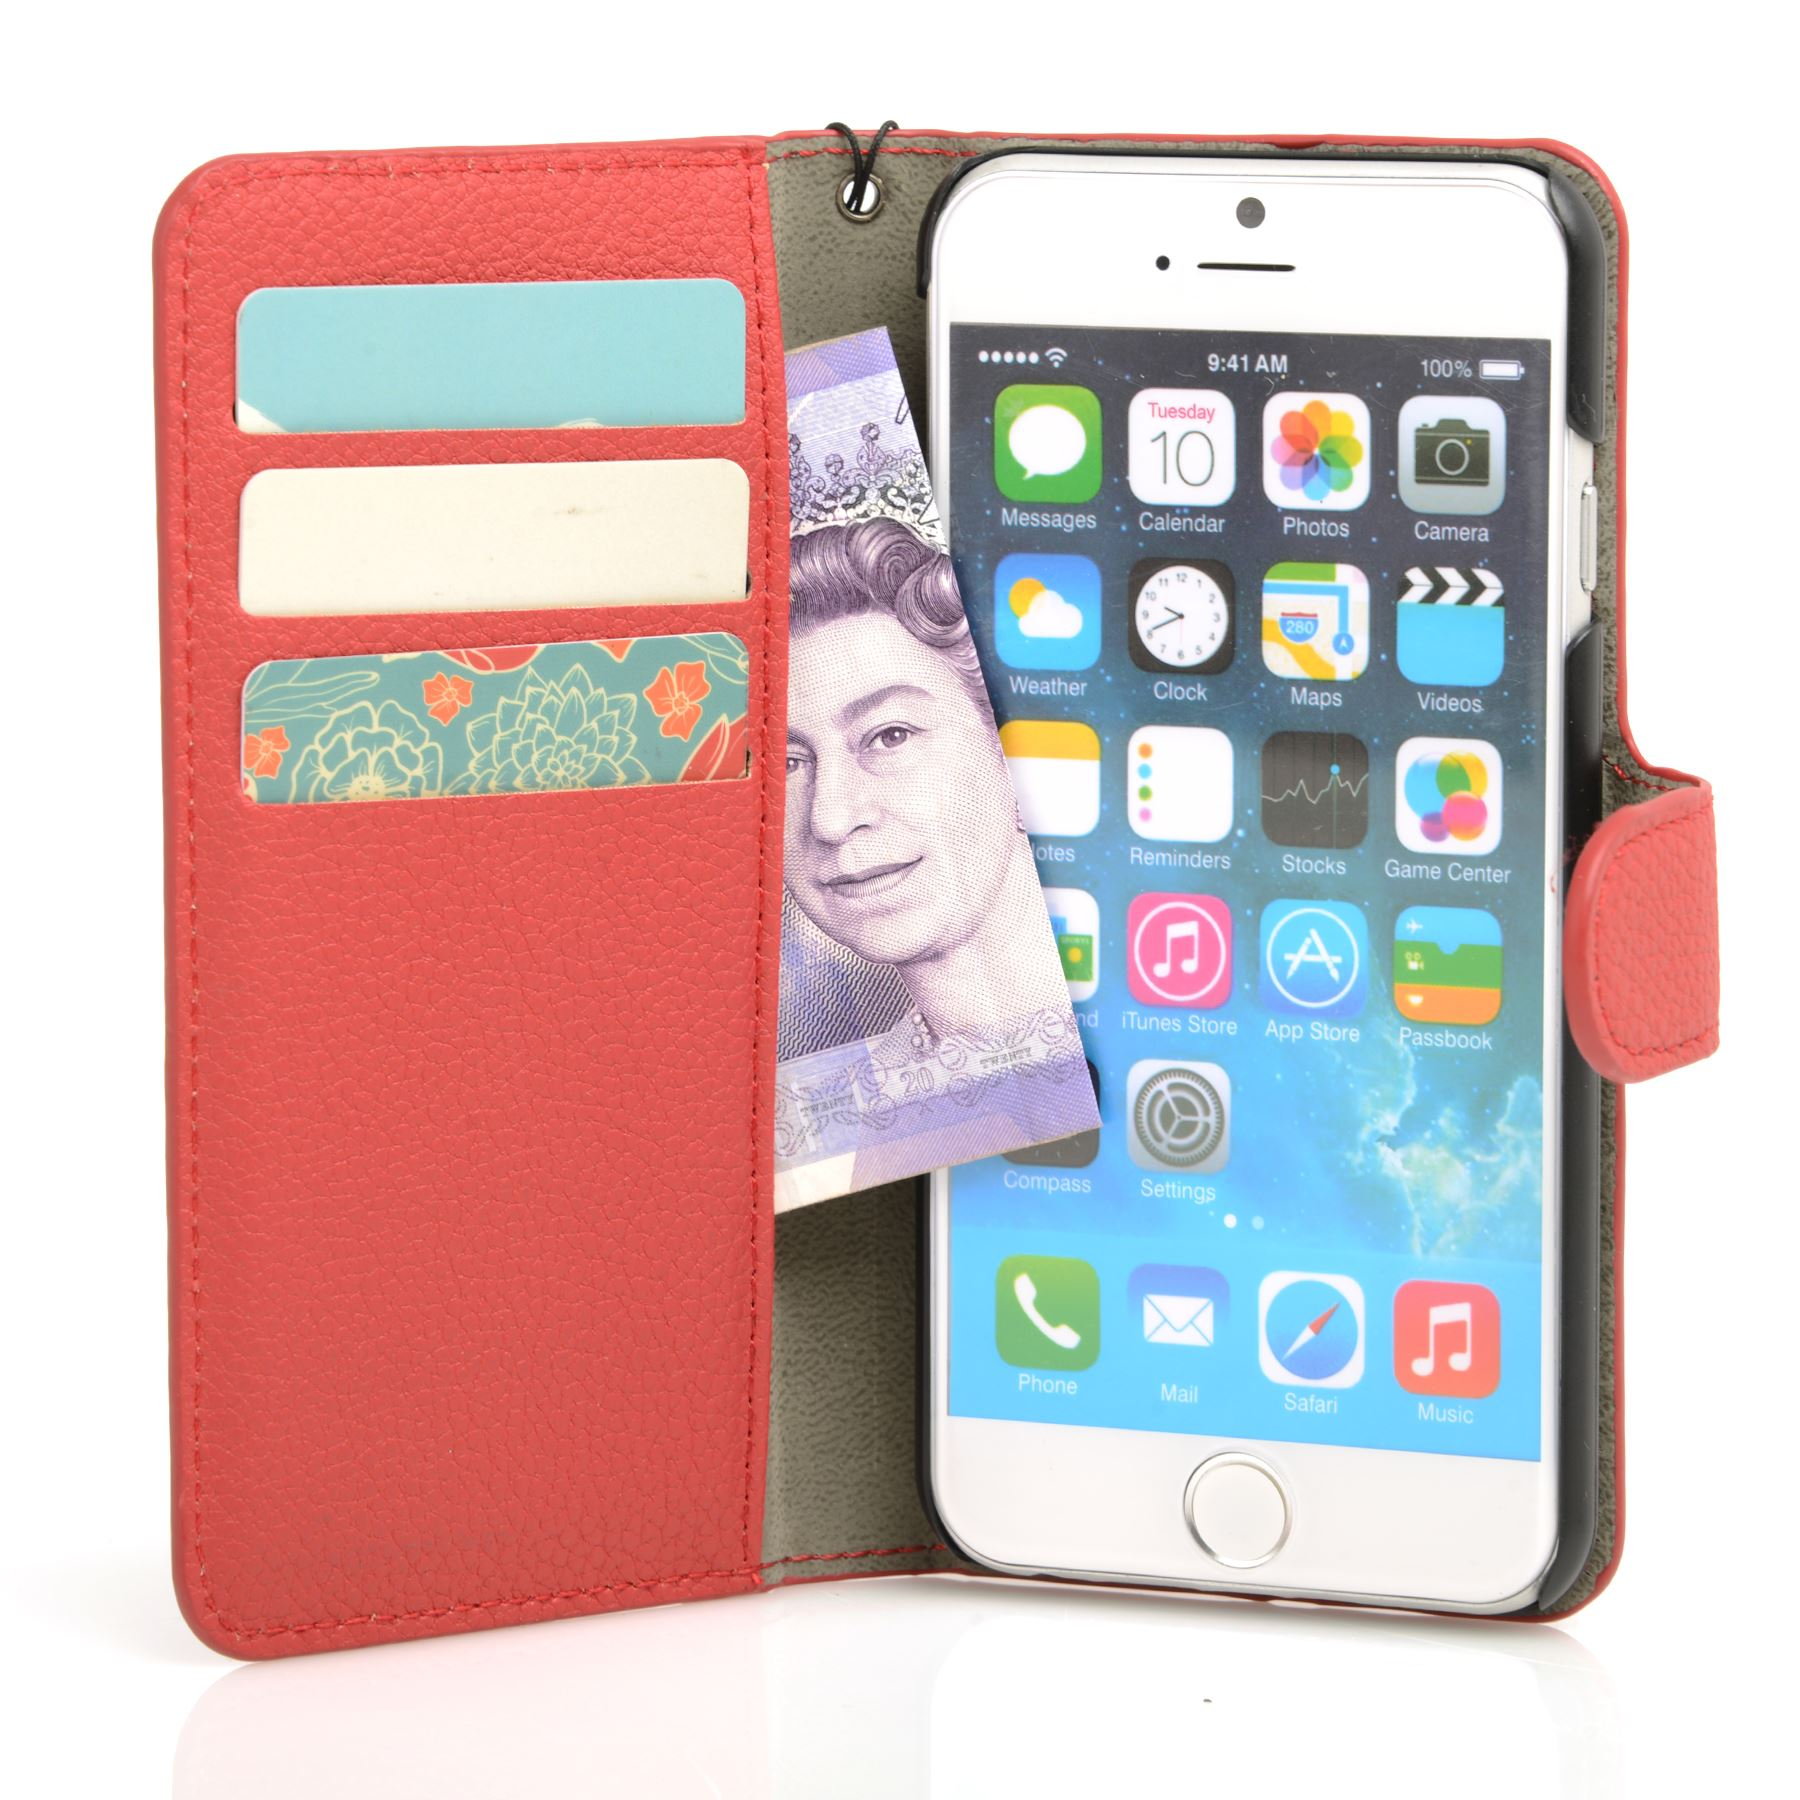 thumbnail 34 - For Apple iPhone 6s 6 Case Premium Textured Leather Wallet Madcase Cover